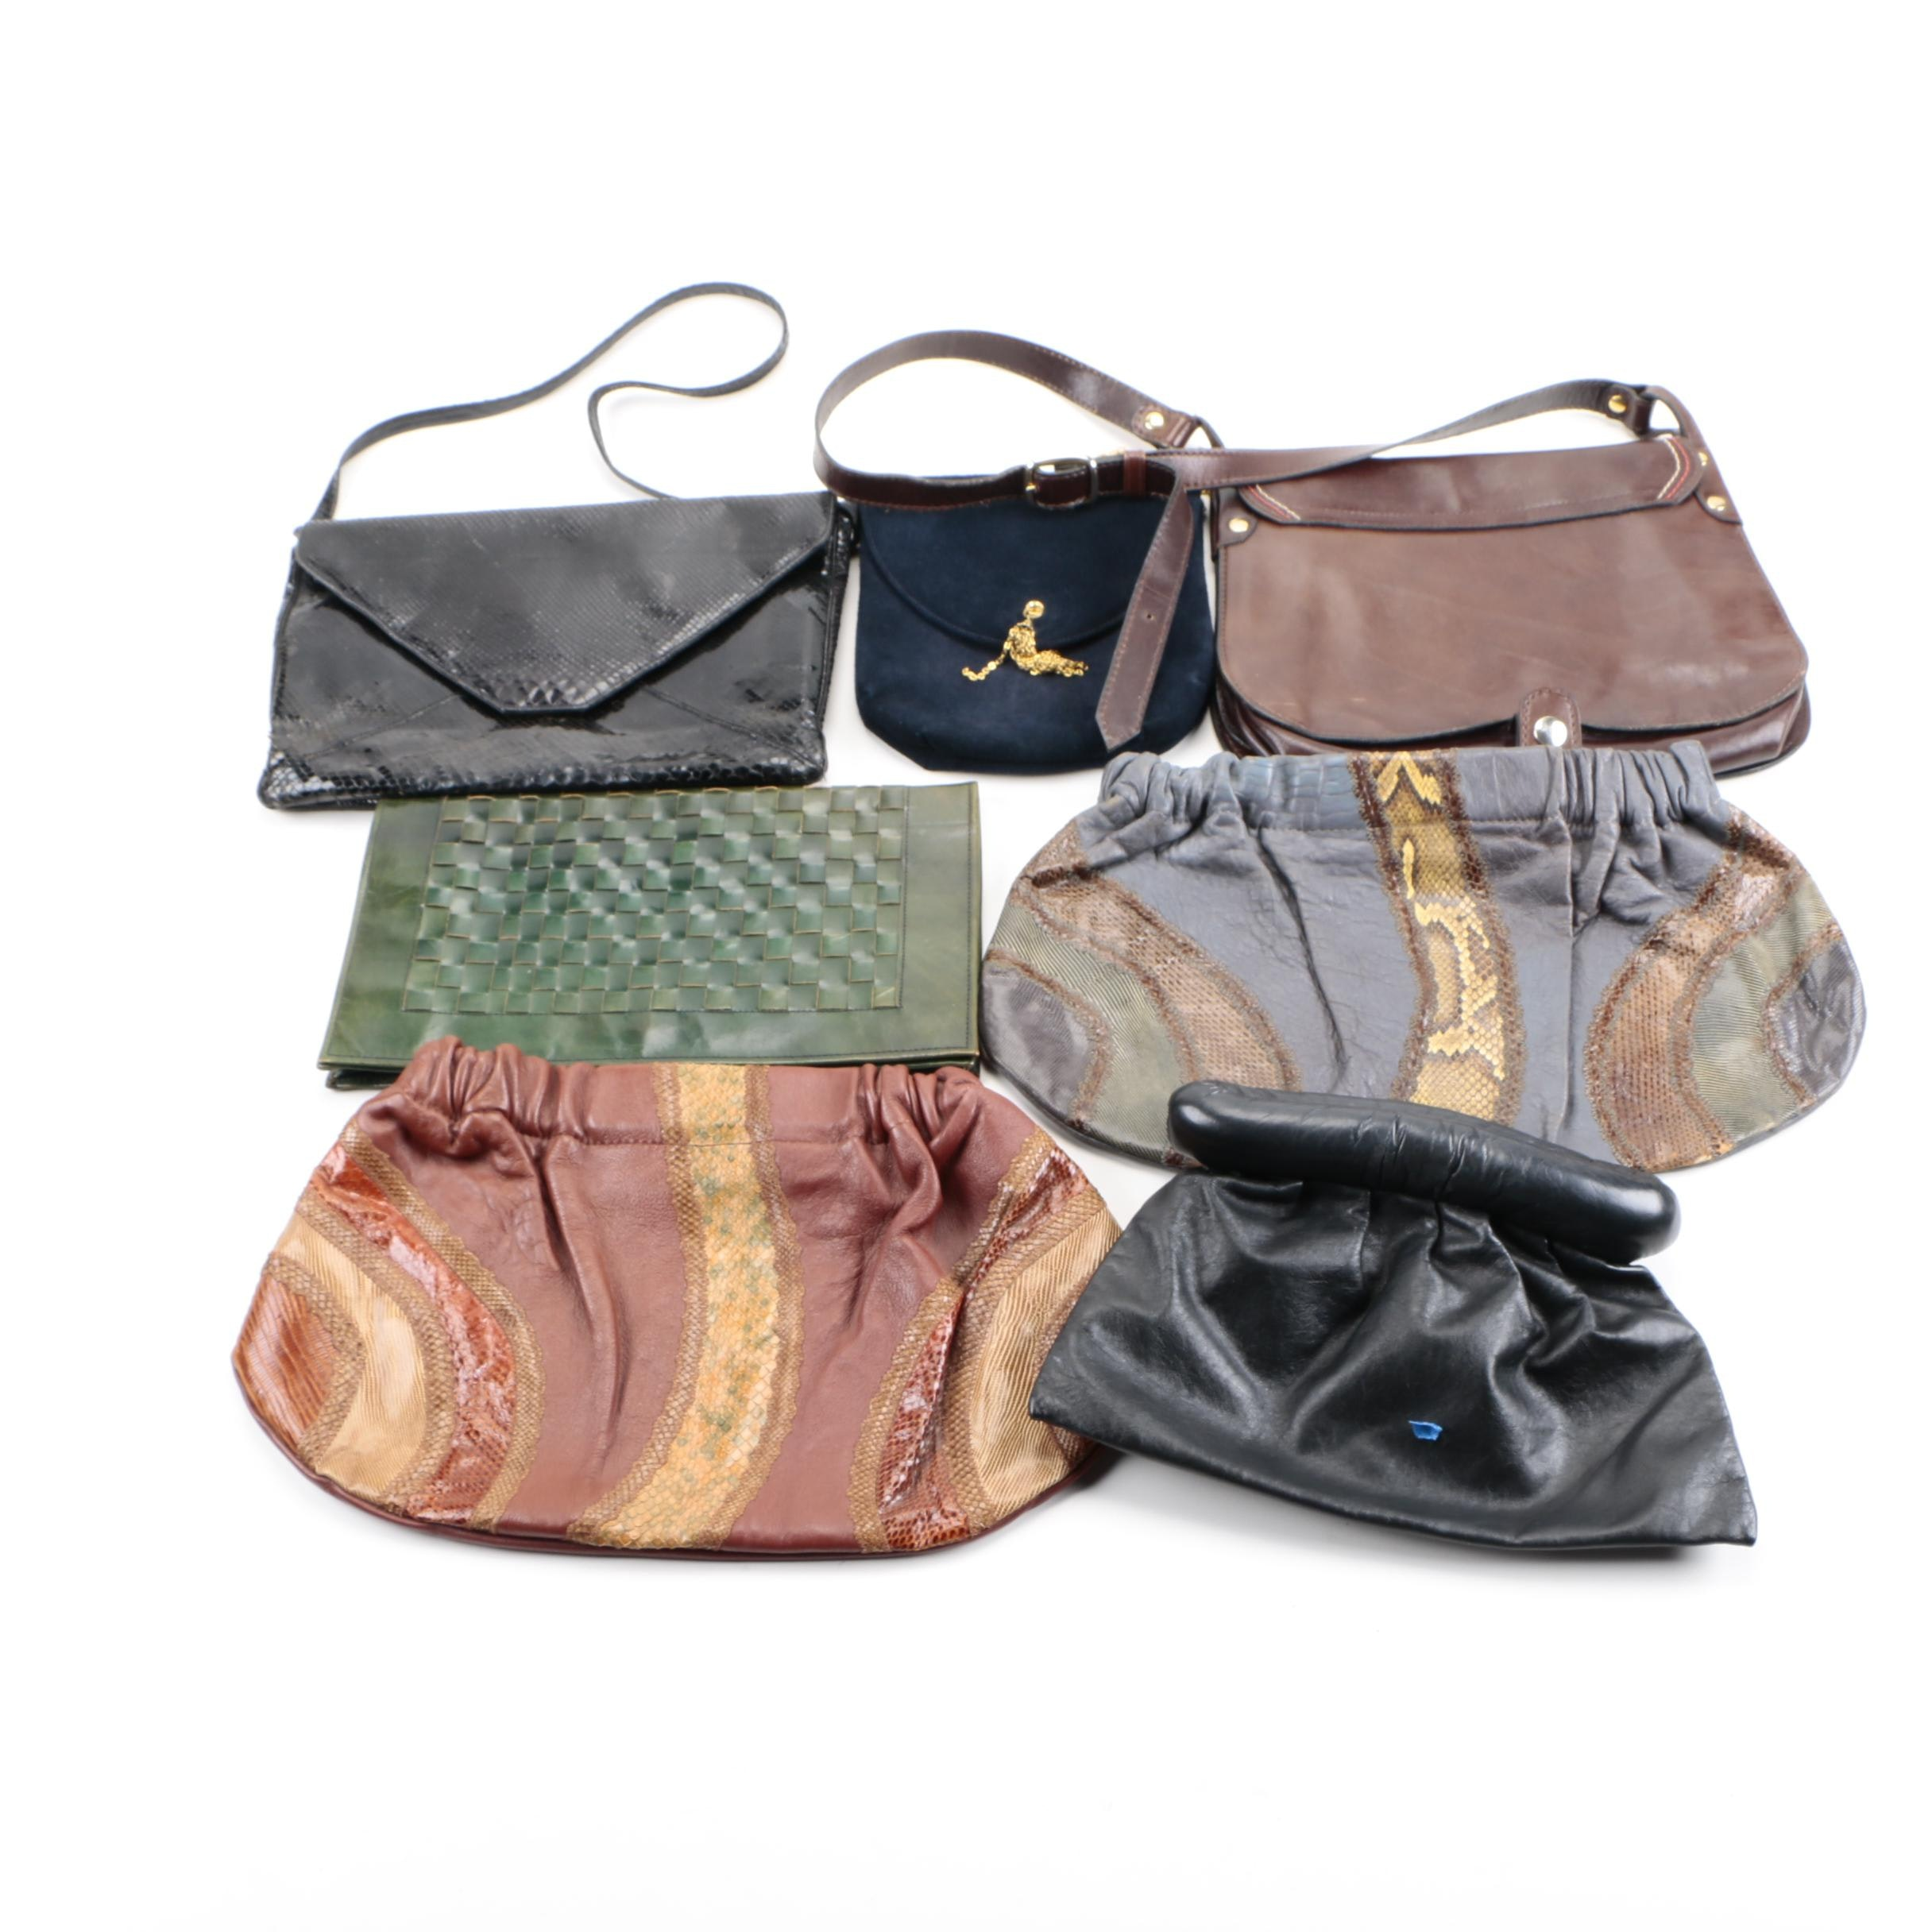 Leather and Reptile Handbags Including Carlos Falchi